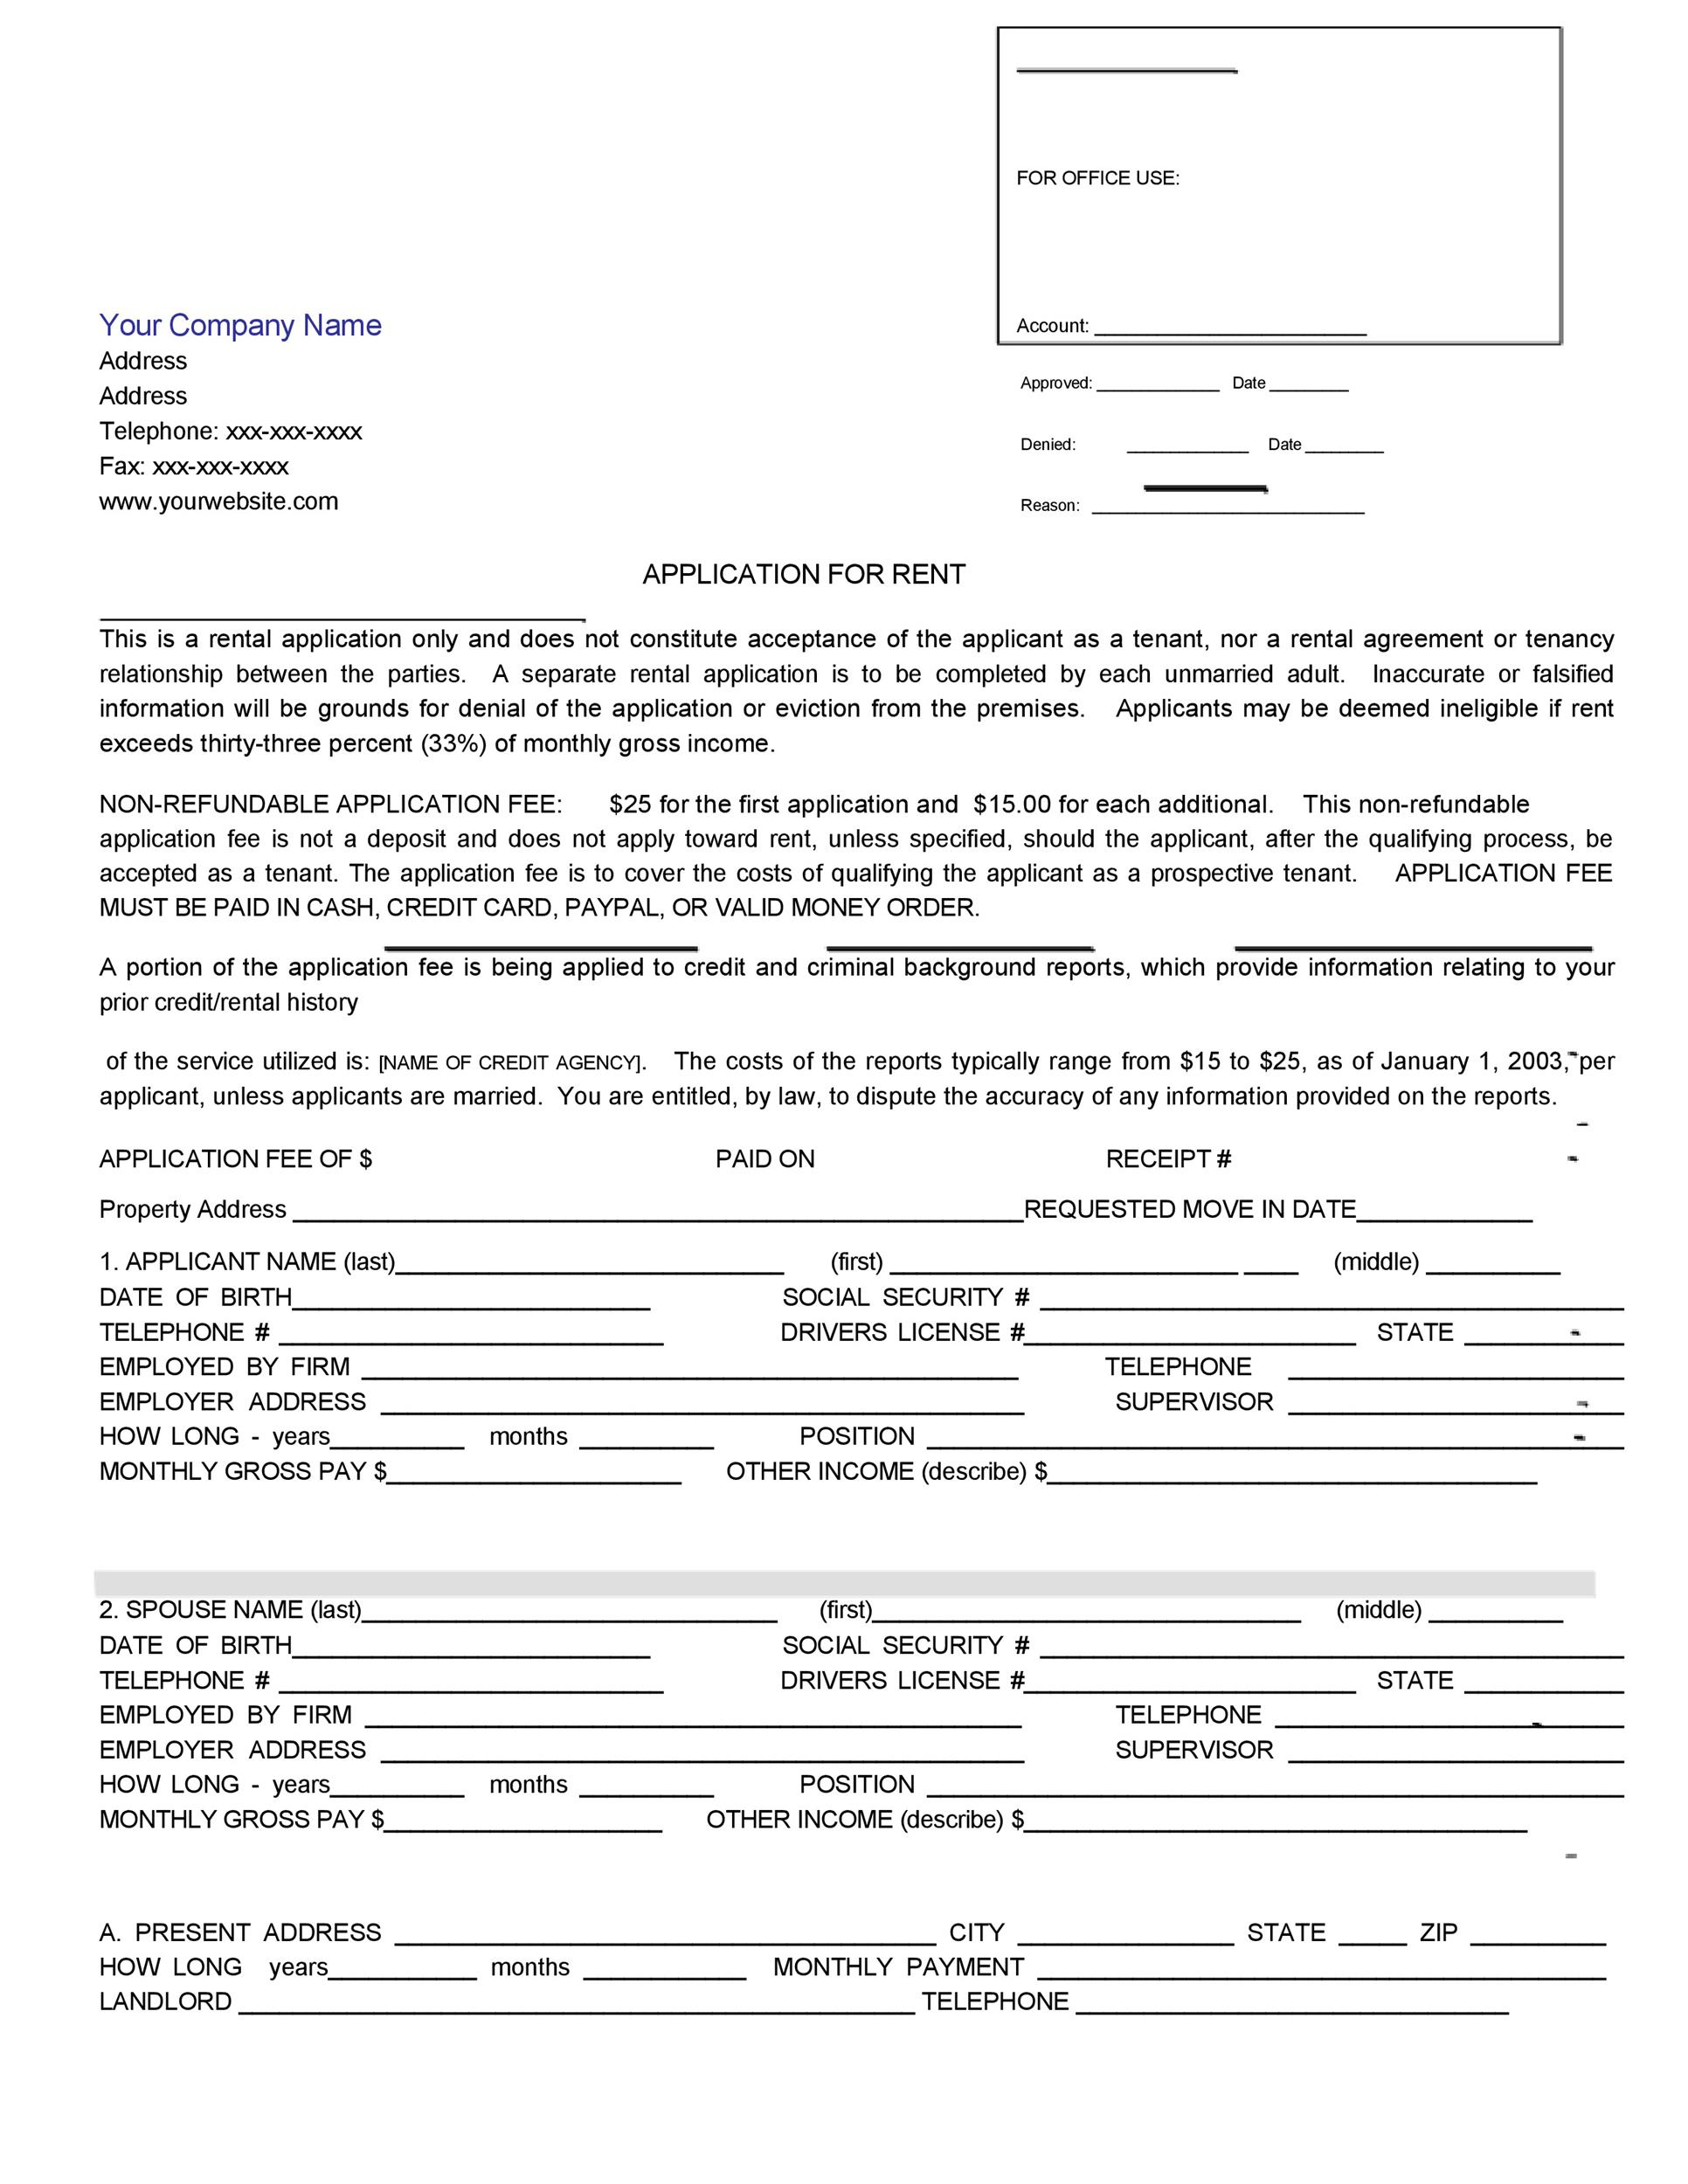 Simple Commercial Lease Agreement Template | Create Professional